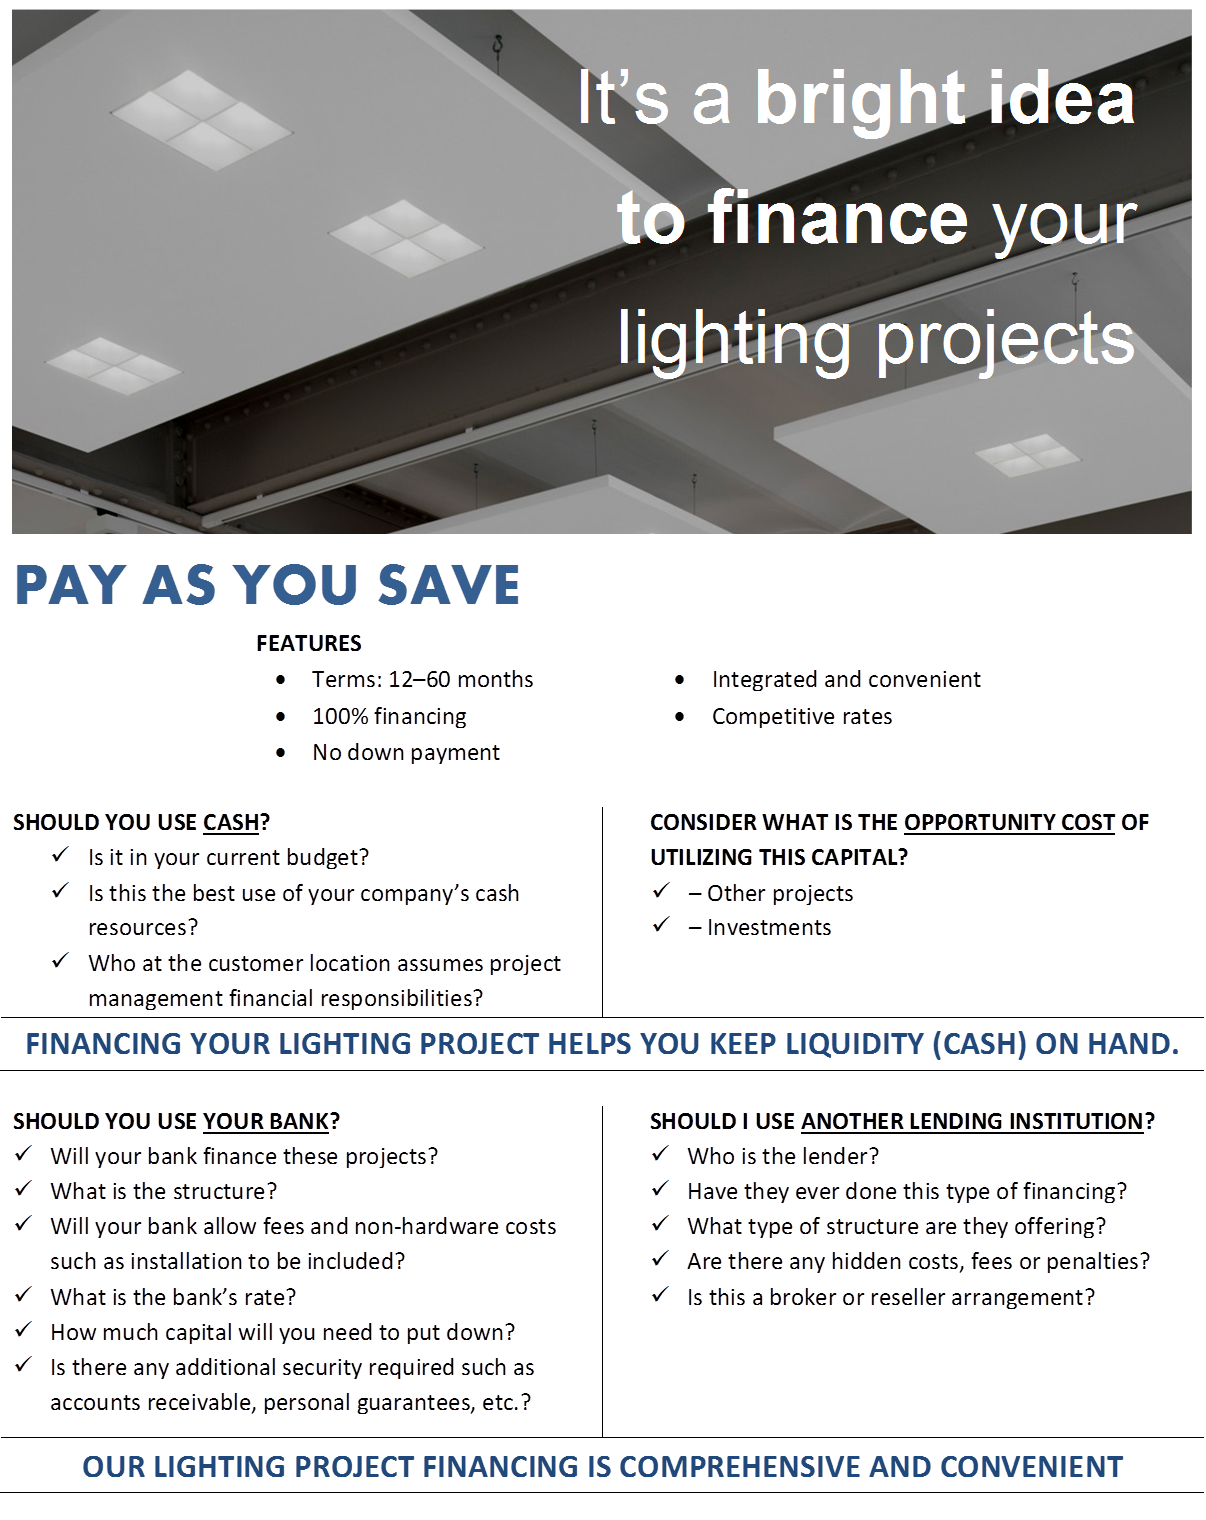 COMMERCIAL FINANCING for Lighting Upgrade Projects